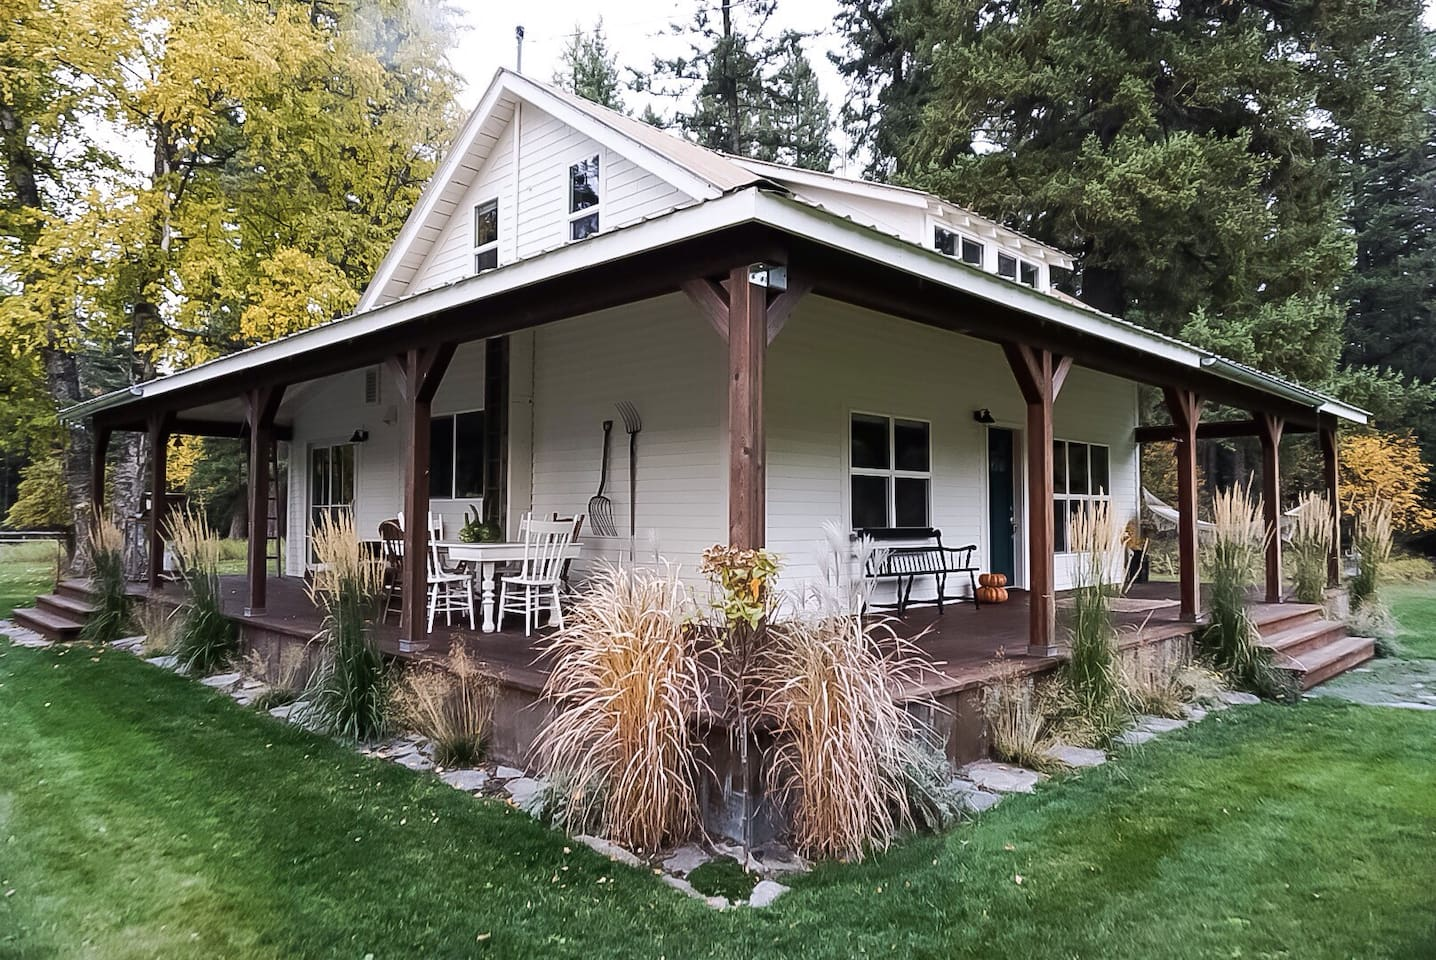 1920s fully restored mountain cottage in Bigfork, MT  1400 sq ft and 1.25 green acres mixed with trees and woods